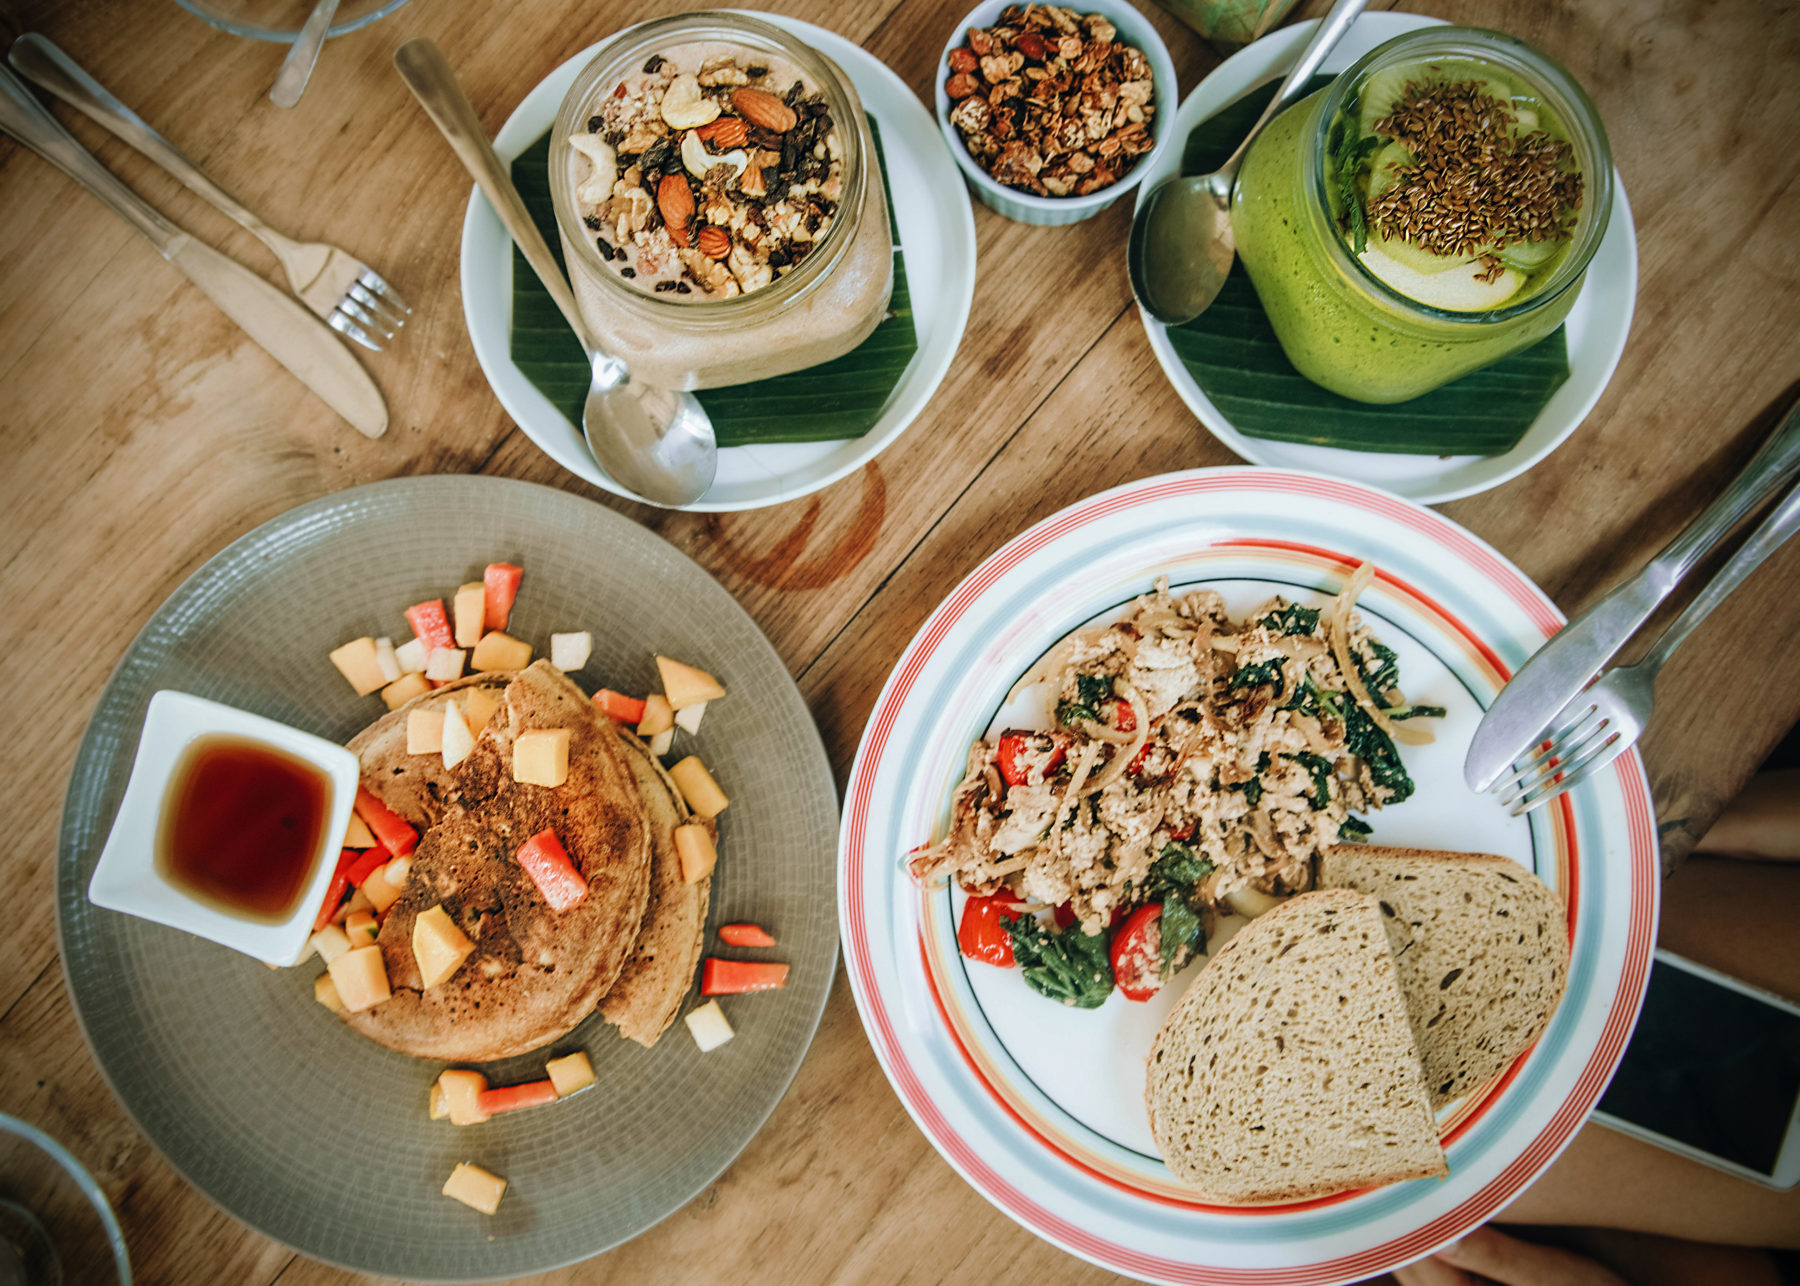 vegan healthy food in gili islands pitu cafe indonesia jackfruit curry scrambled tofu smoothie bowls